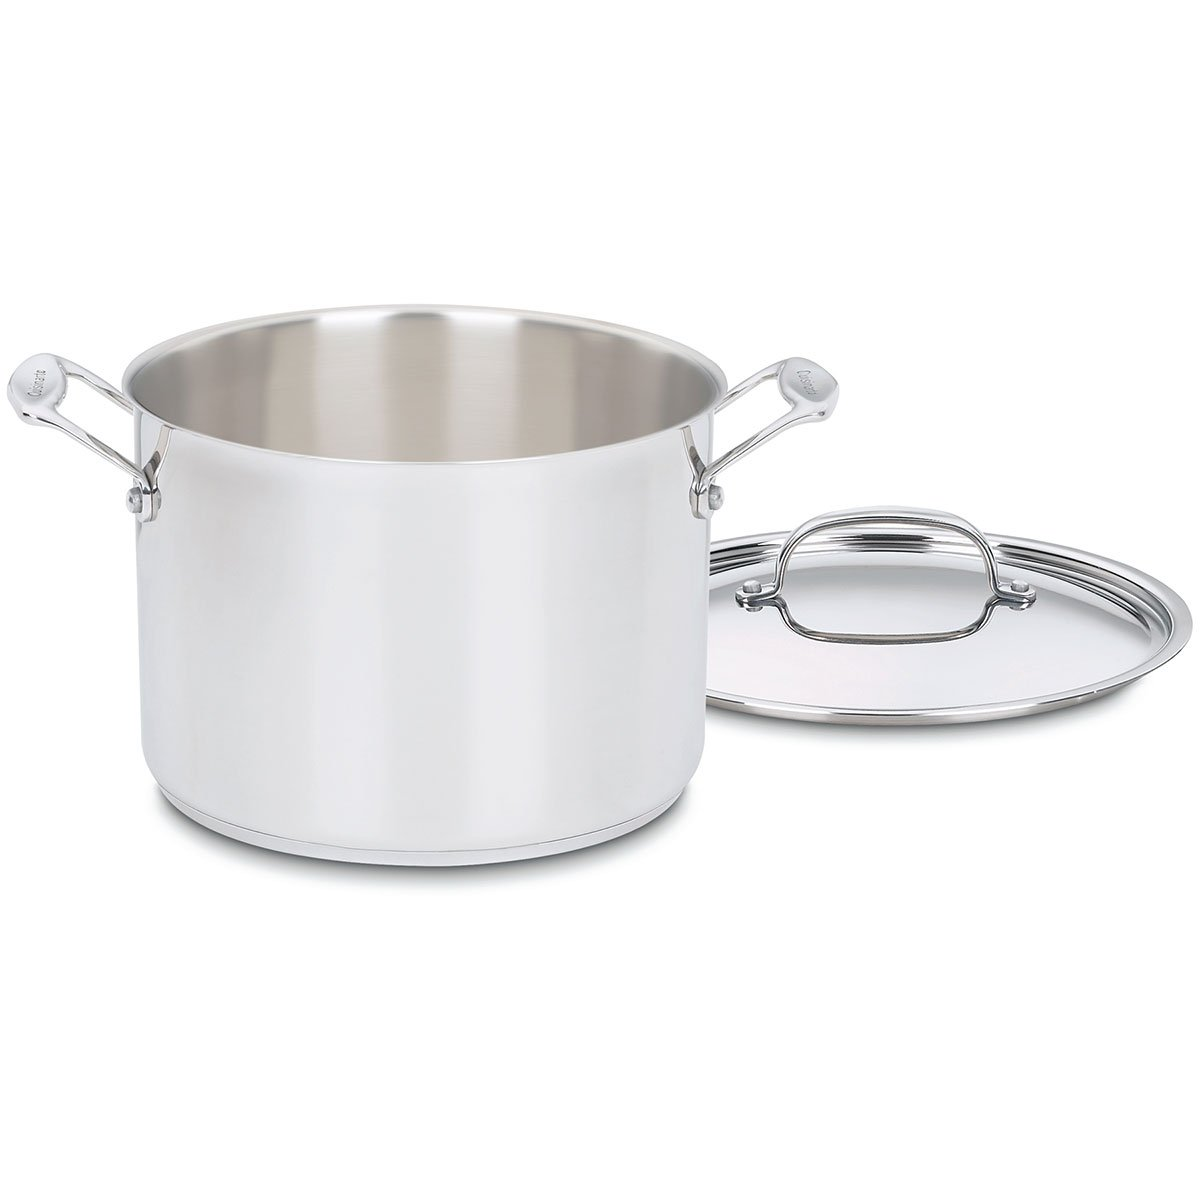 Chef's Classic Stainless Steel Stock Pot with Lid Size: 8-qt.